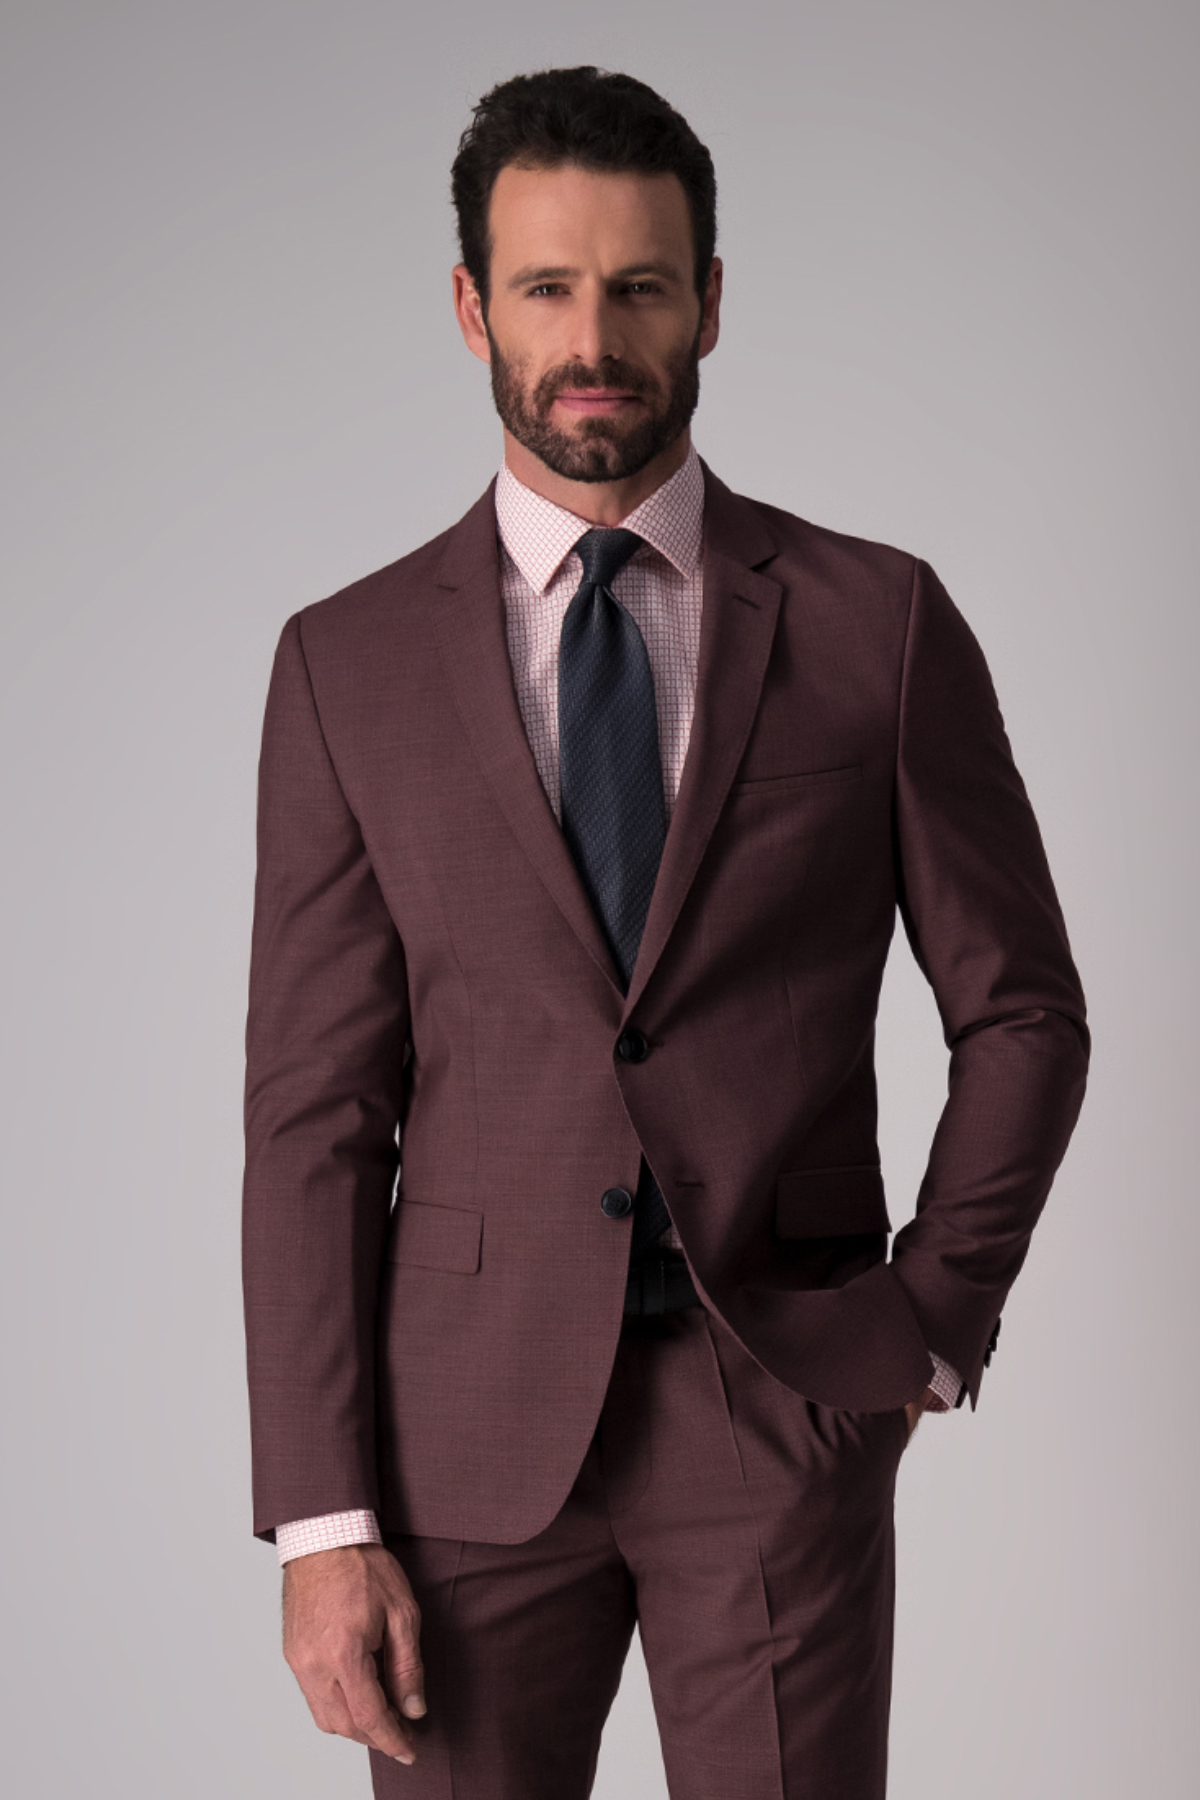 Traje Hugo Boss, 100%lana, slim fit, liso color vino.